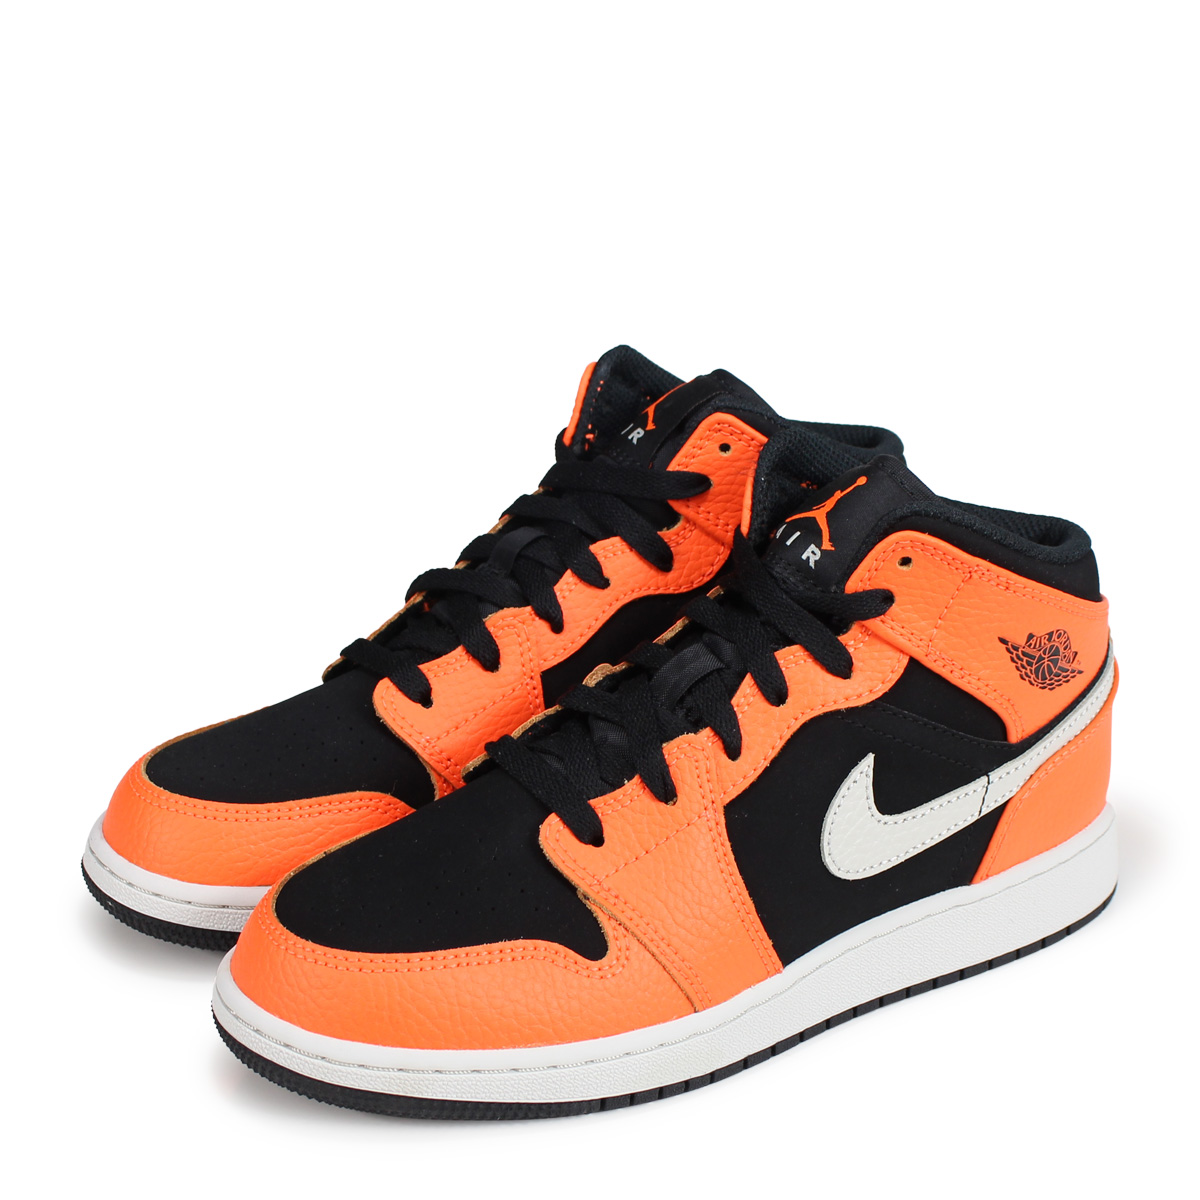 100% autentyczny autoryzowana strona popularne sklepy NIKE AIR JORDAN 1 MID GS Nike Air Jordan 1 Lady's sneakers 554,725-062  orange [load planned Shinnyu load in reservation product 10/15 containing]  ...